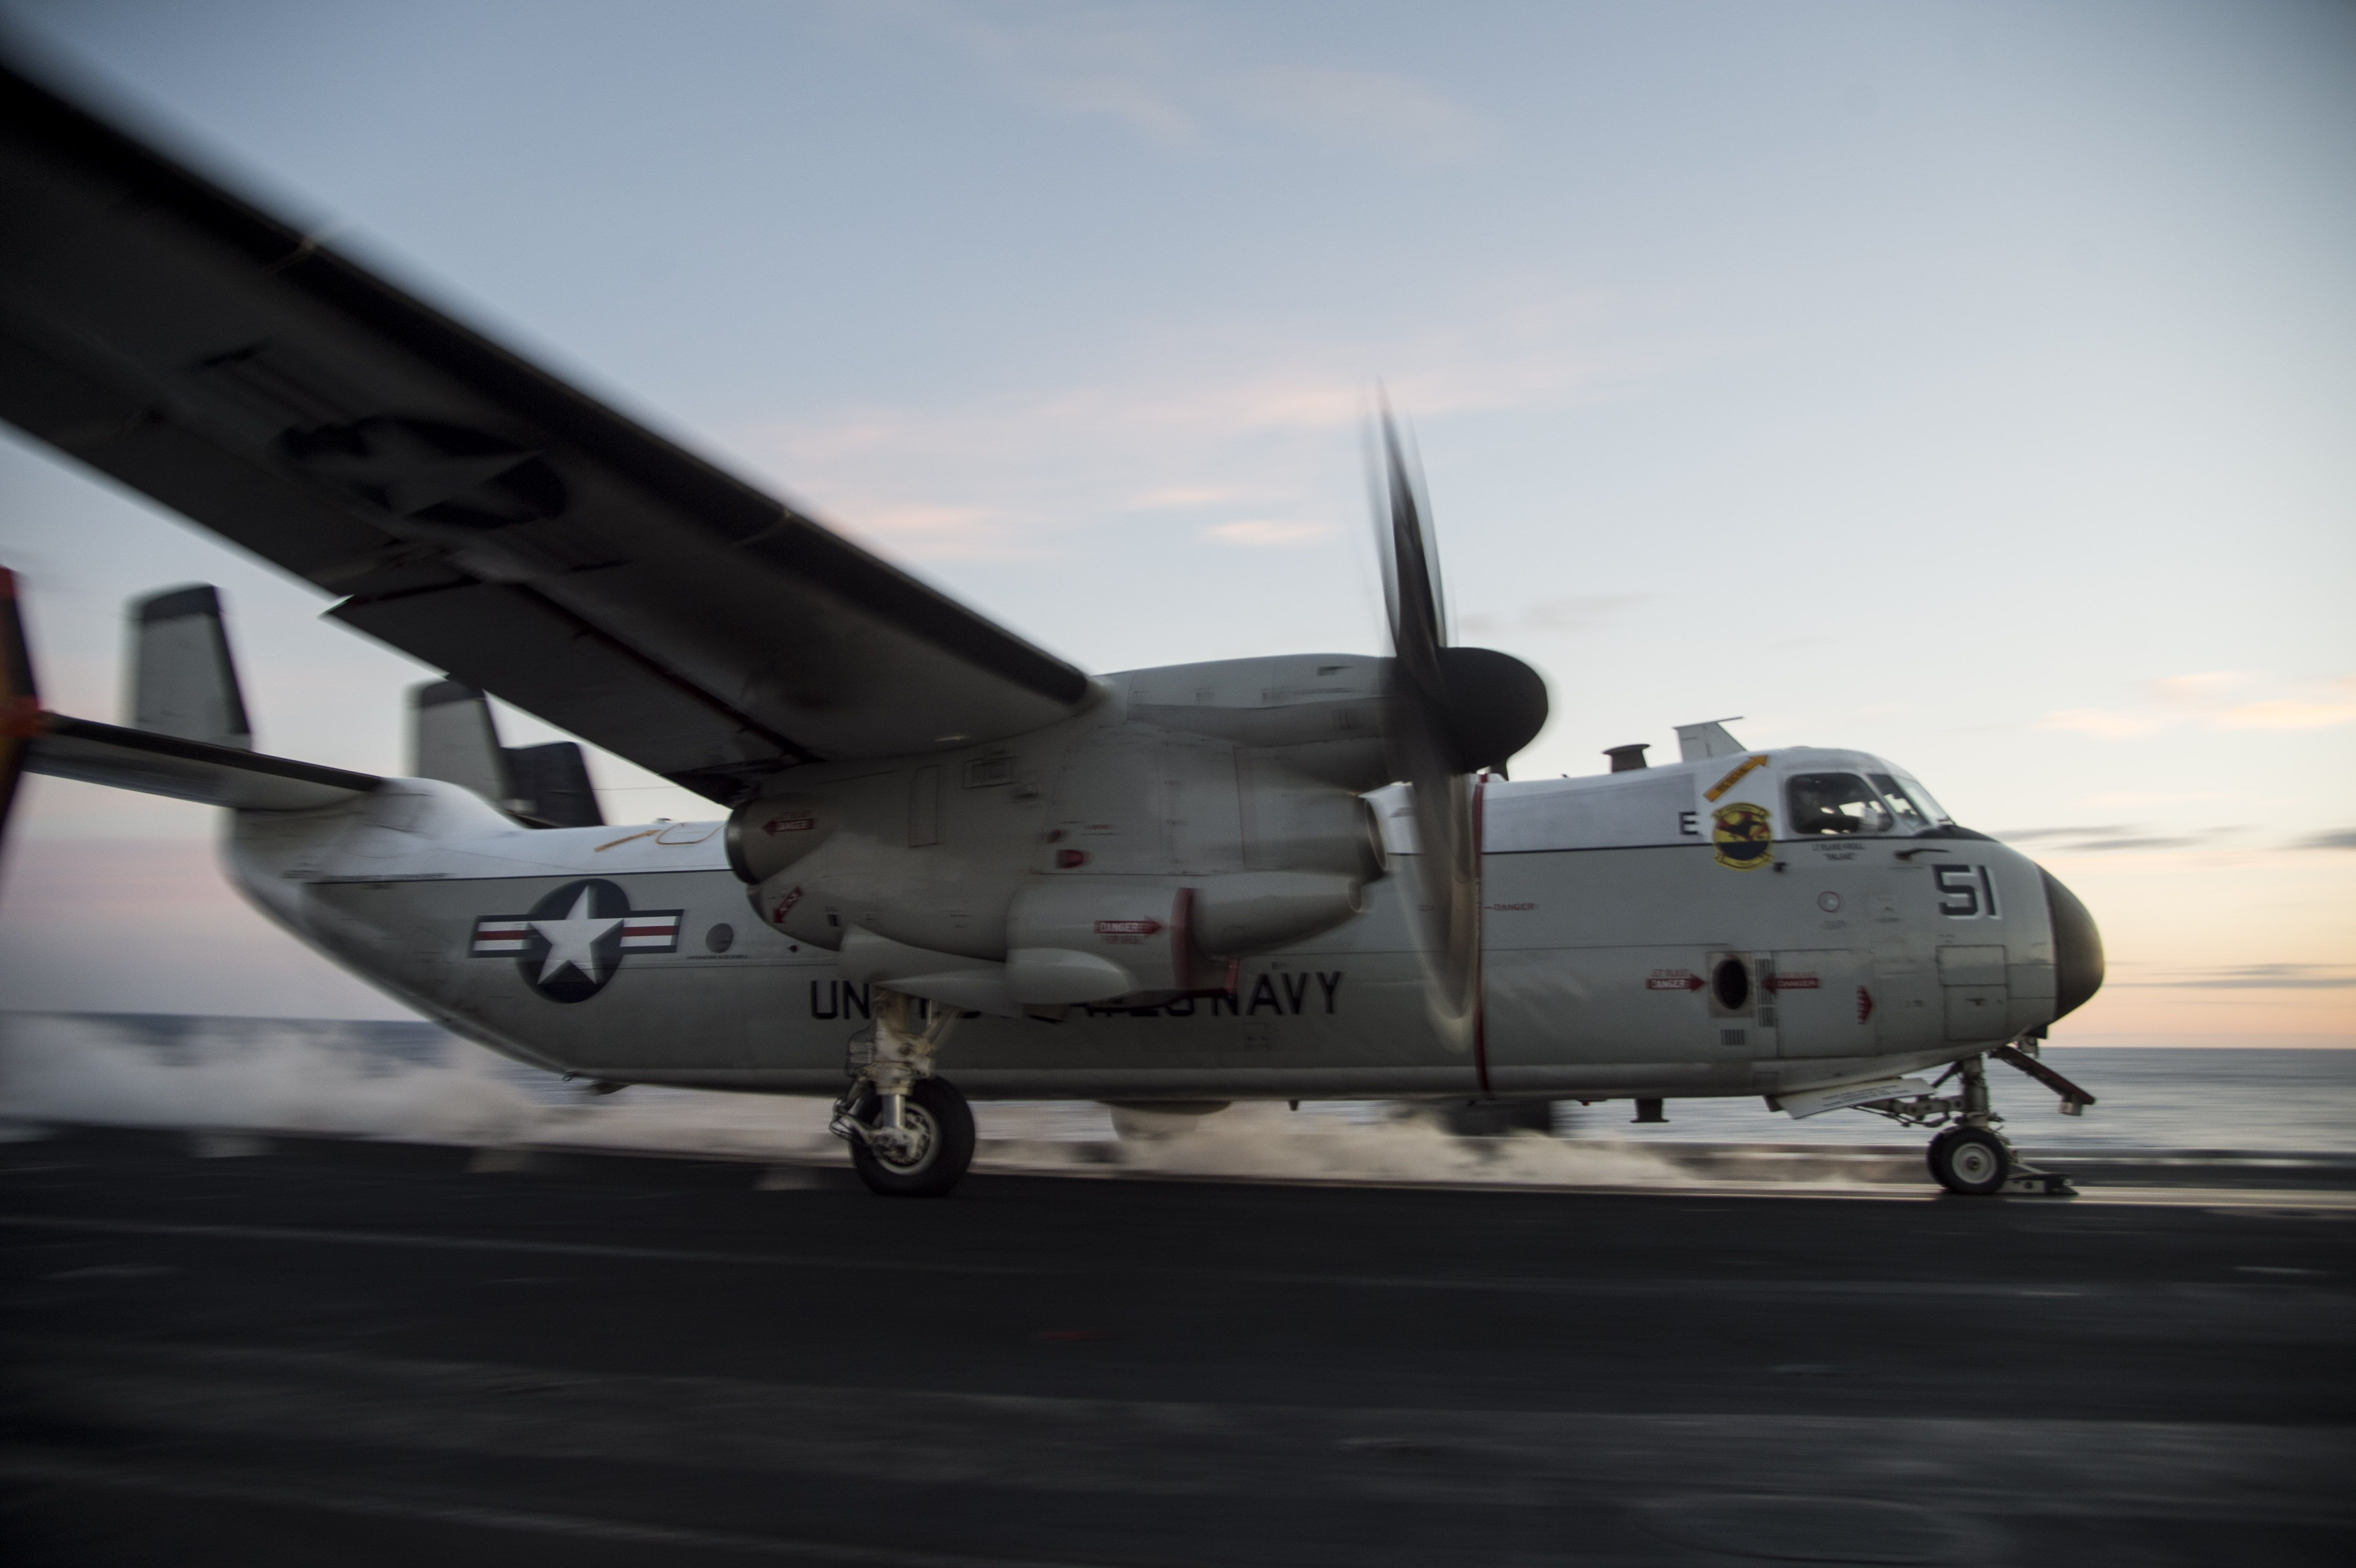 Navy Recovers Lost Aircraft From Three Miles Below the Ocean's Surface